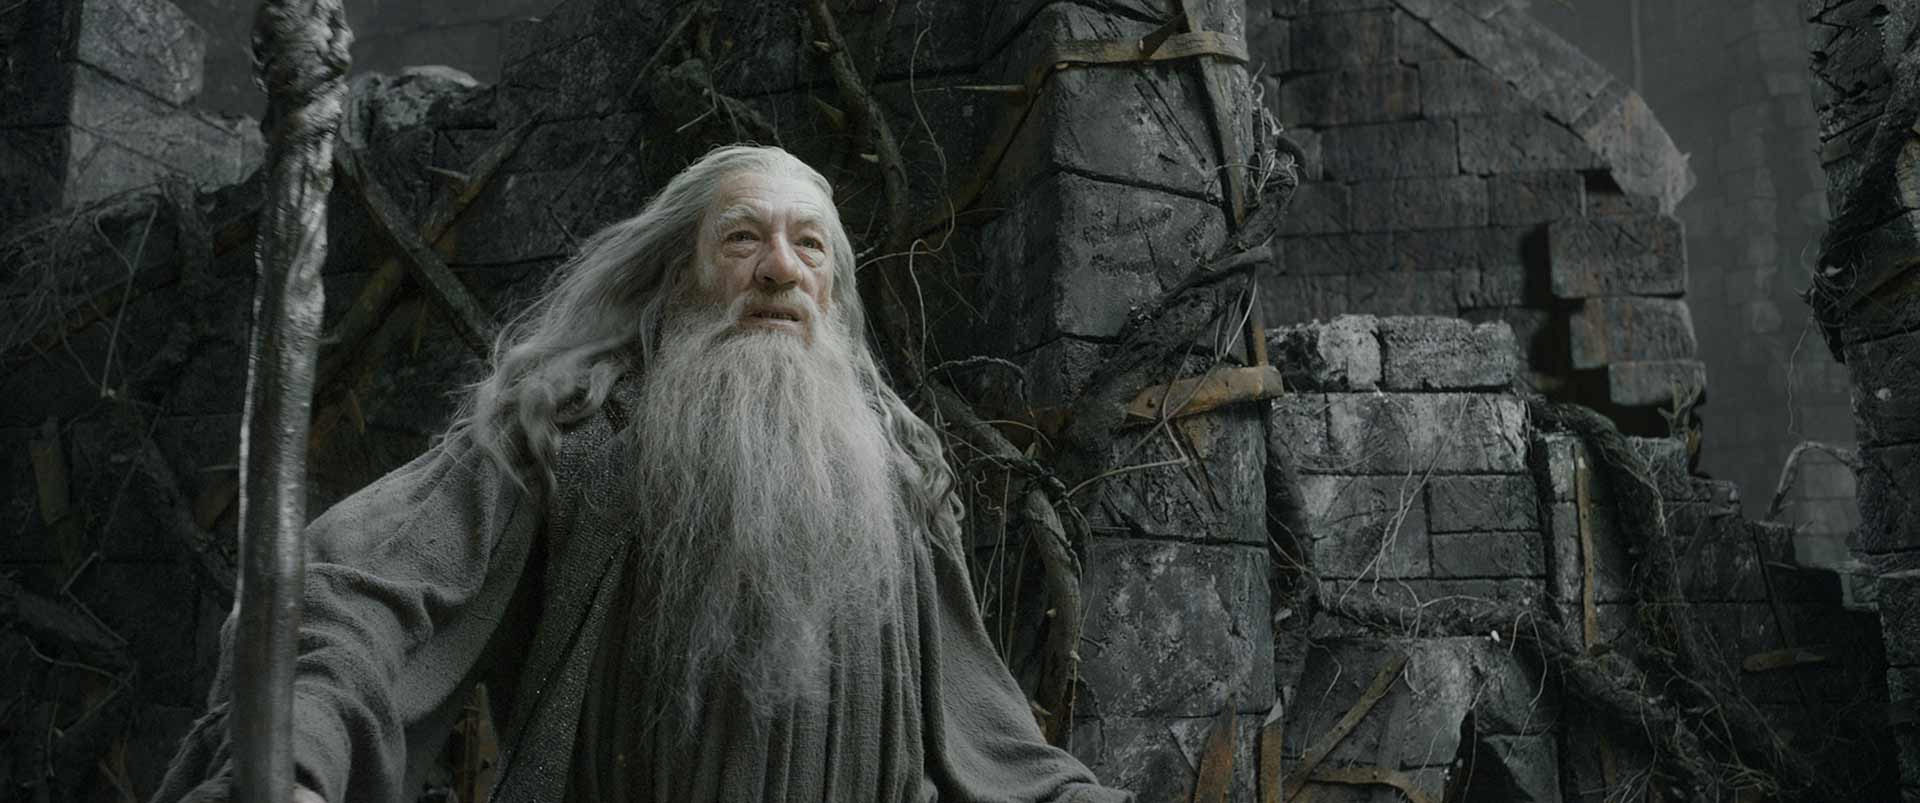 of smaug gandalf wallpaper background hd in high quality wallpaper 1920x803